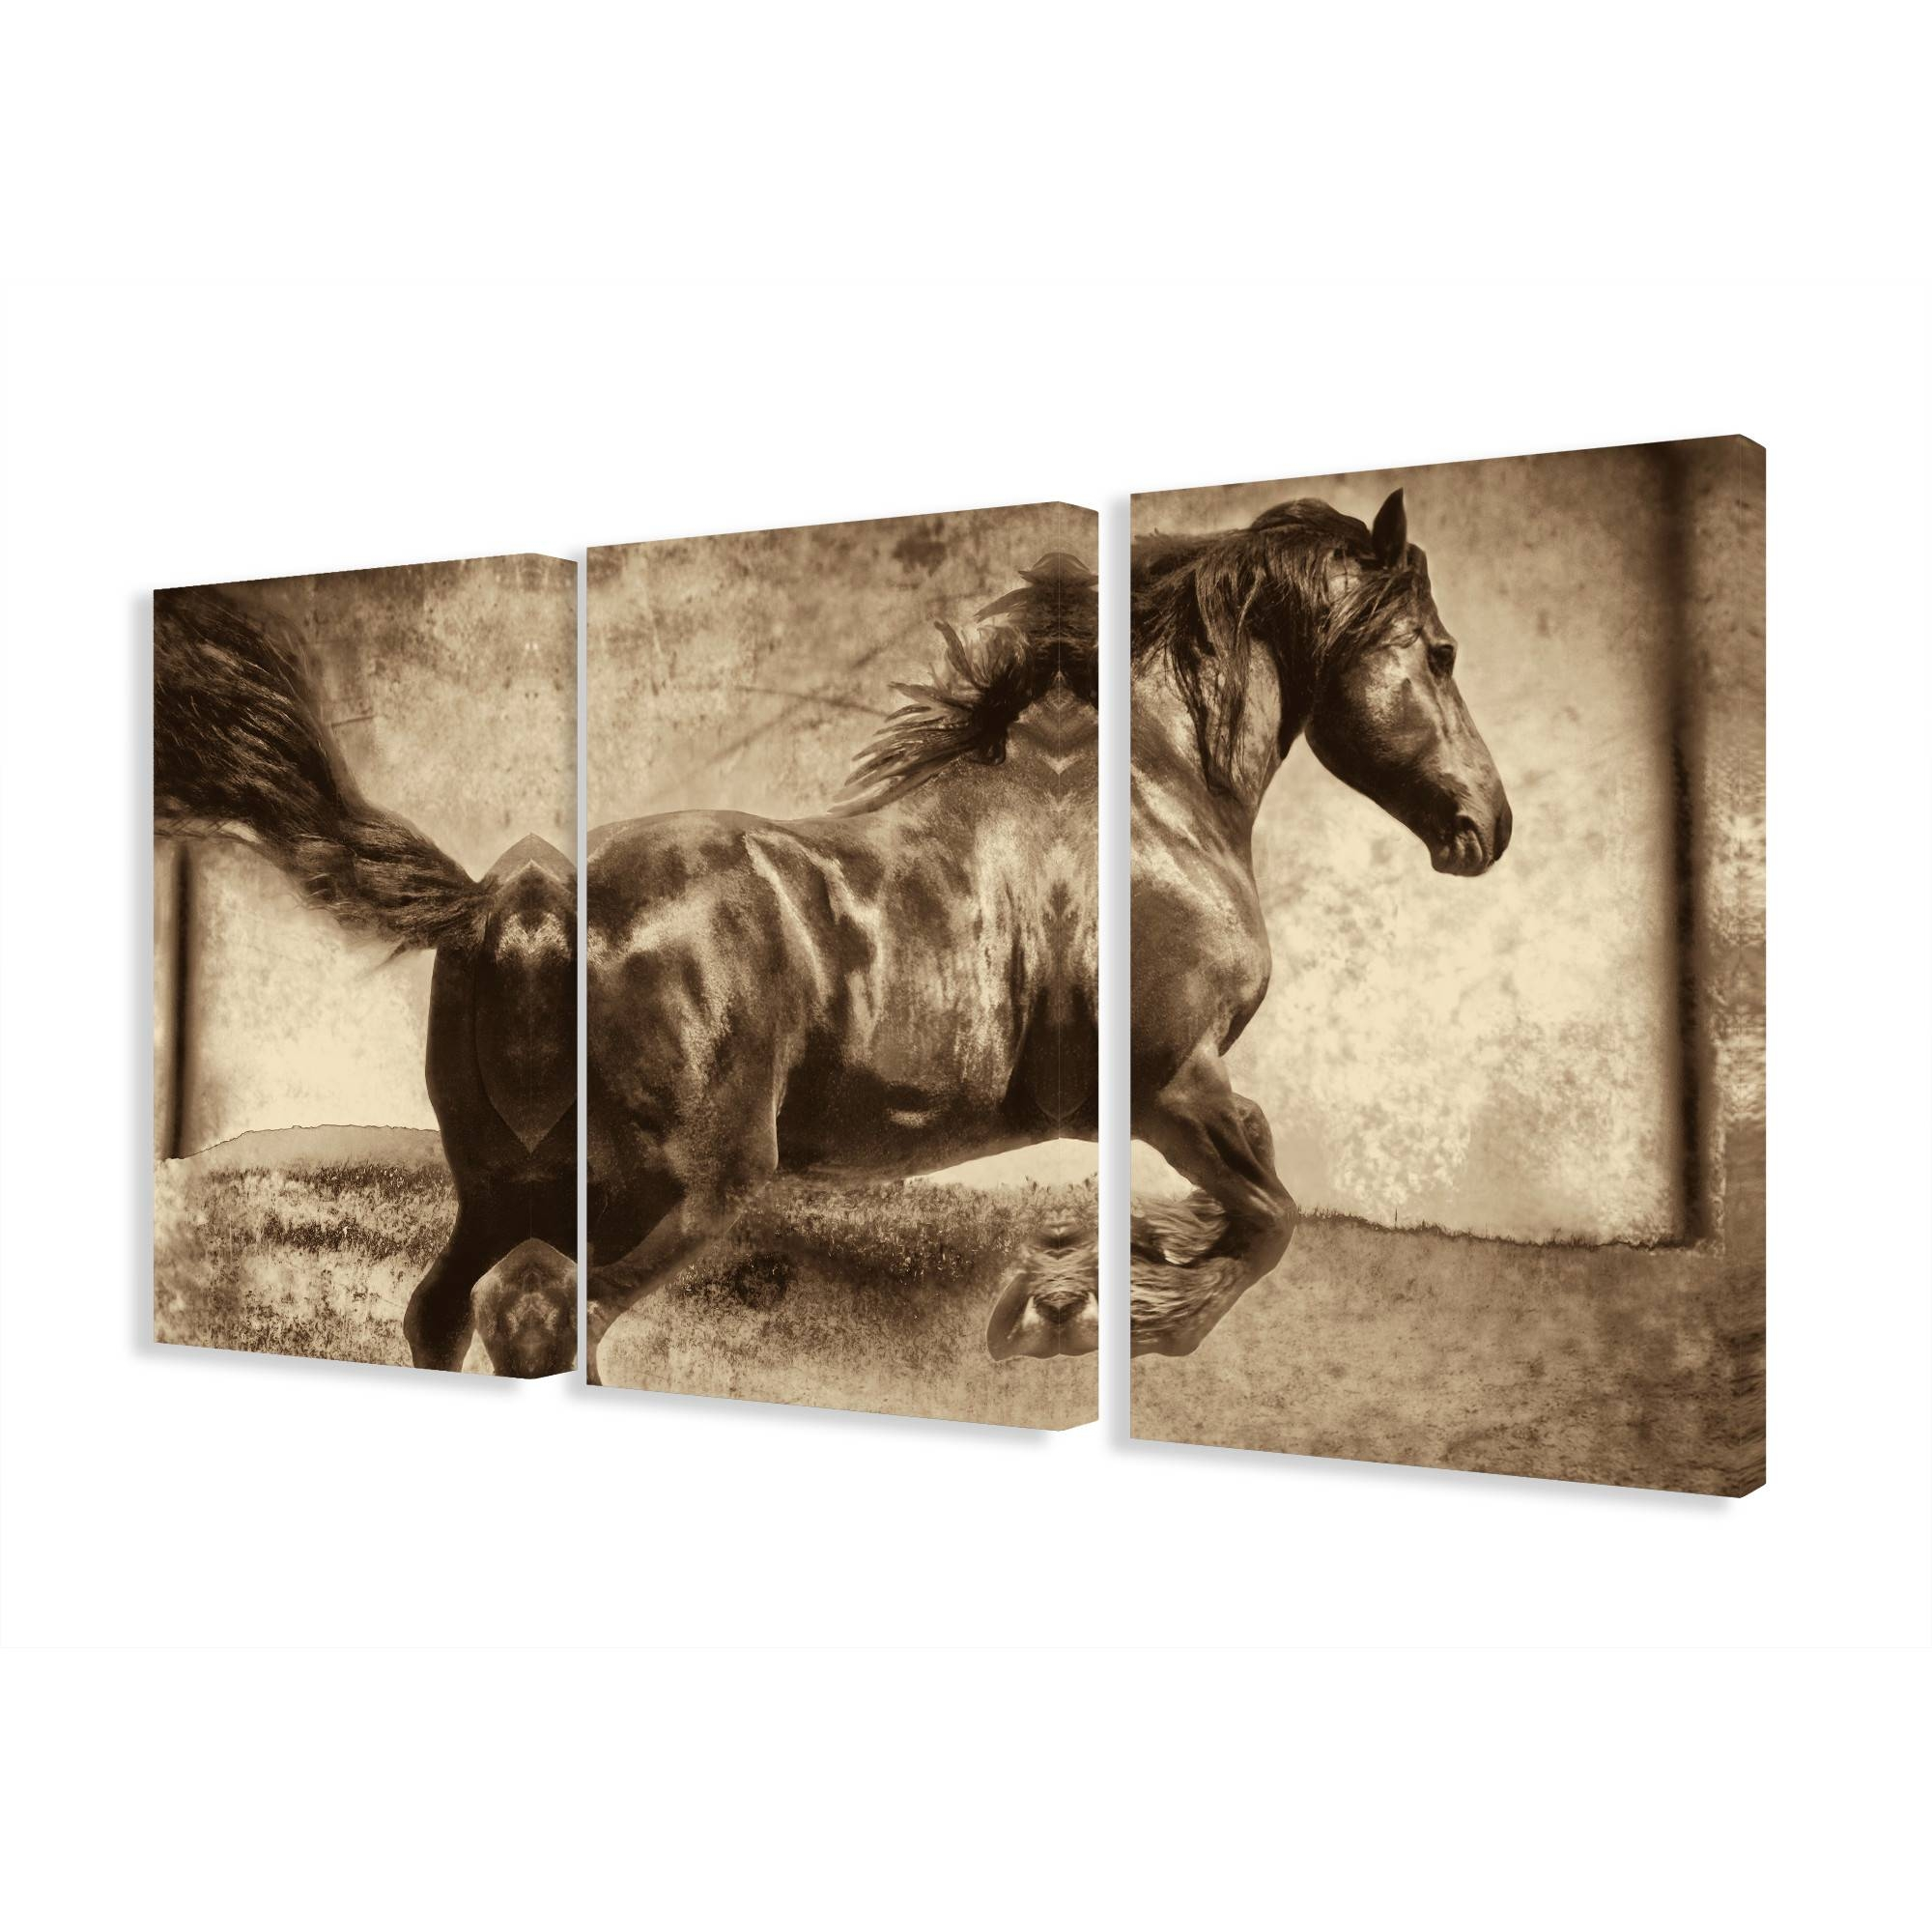 Wall Art Designs: Wonderful Product Description On Wrapped Canvas Throughout Most Current Wall Art Multiple Pieces (View 18 of 20)